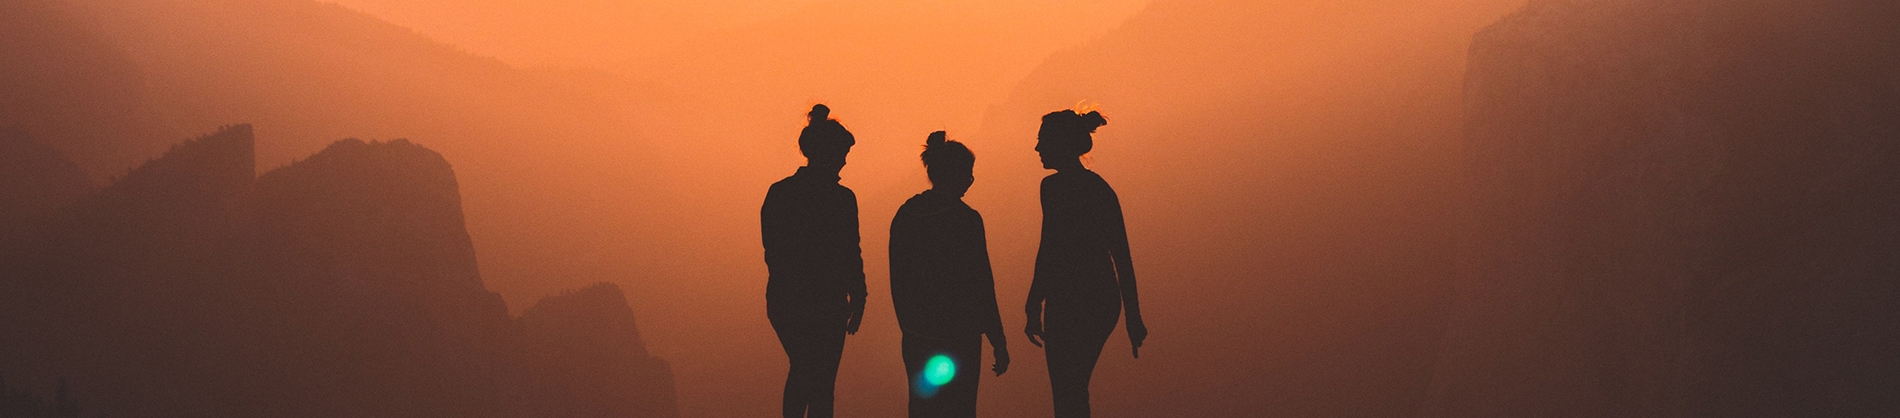 Silhouette of three friends with the sun setting behind them